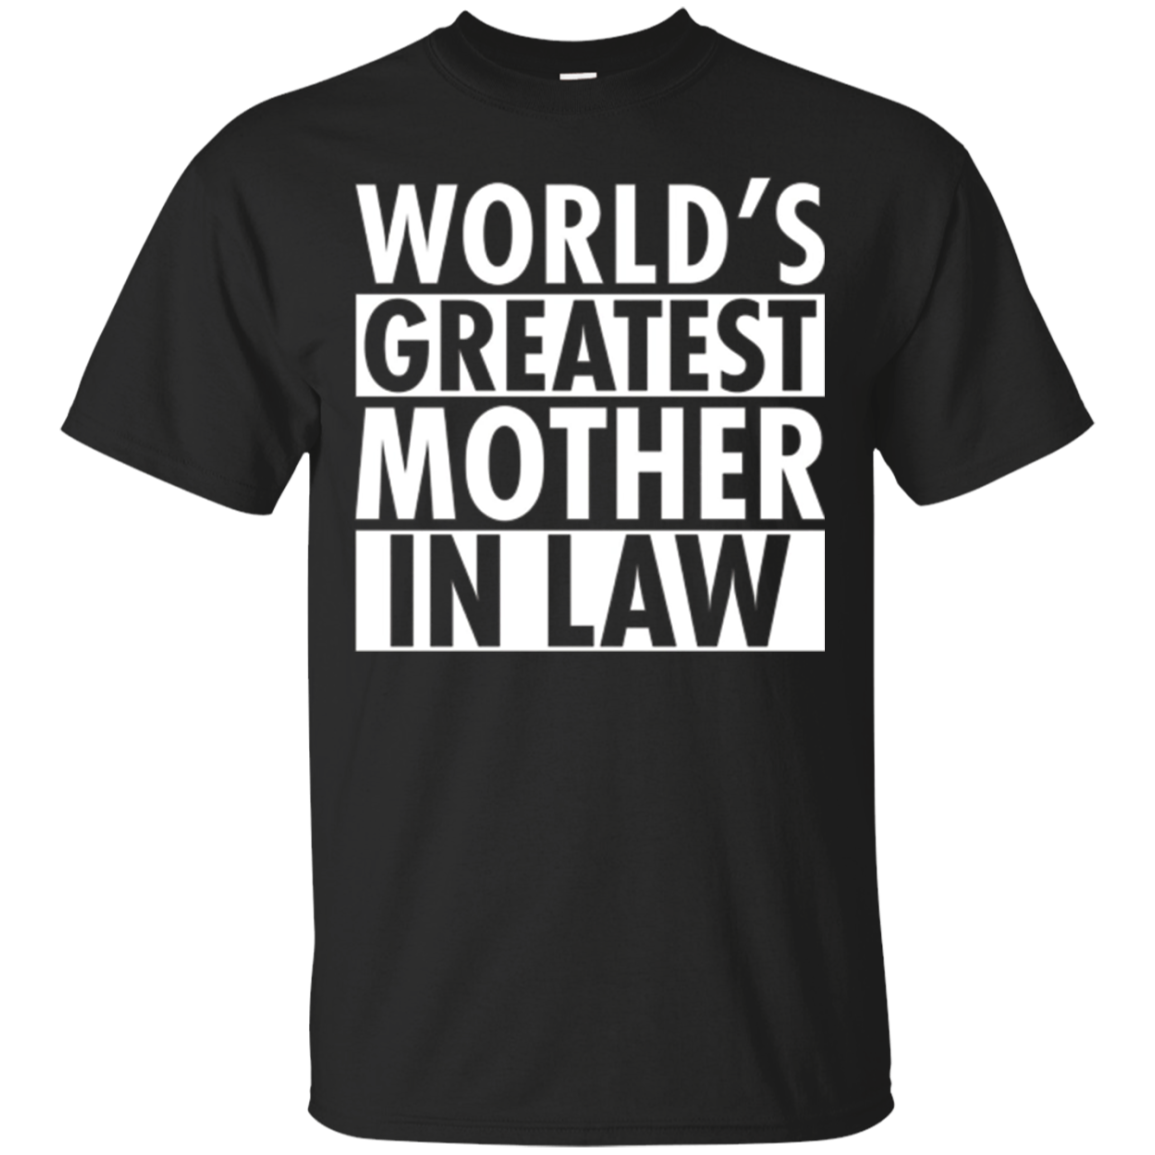 World's Greatest Mother In Law T-Shirt Funny Family Gift